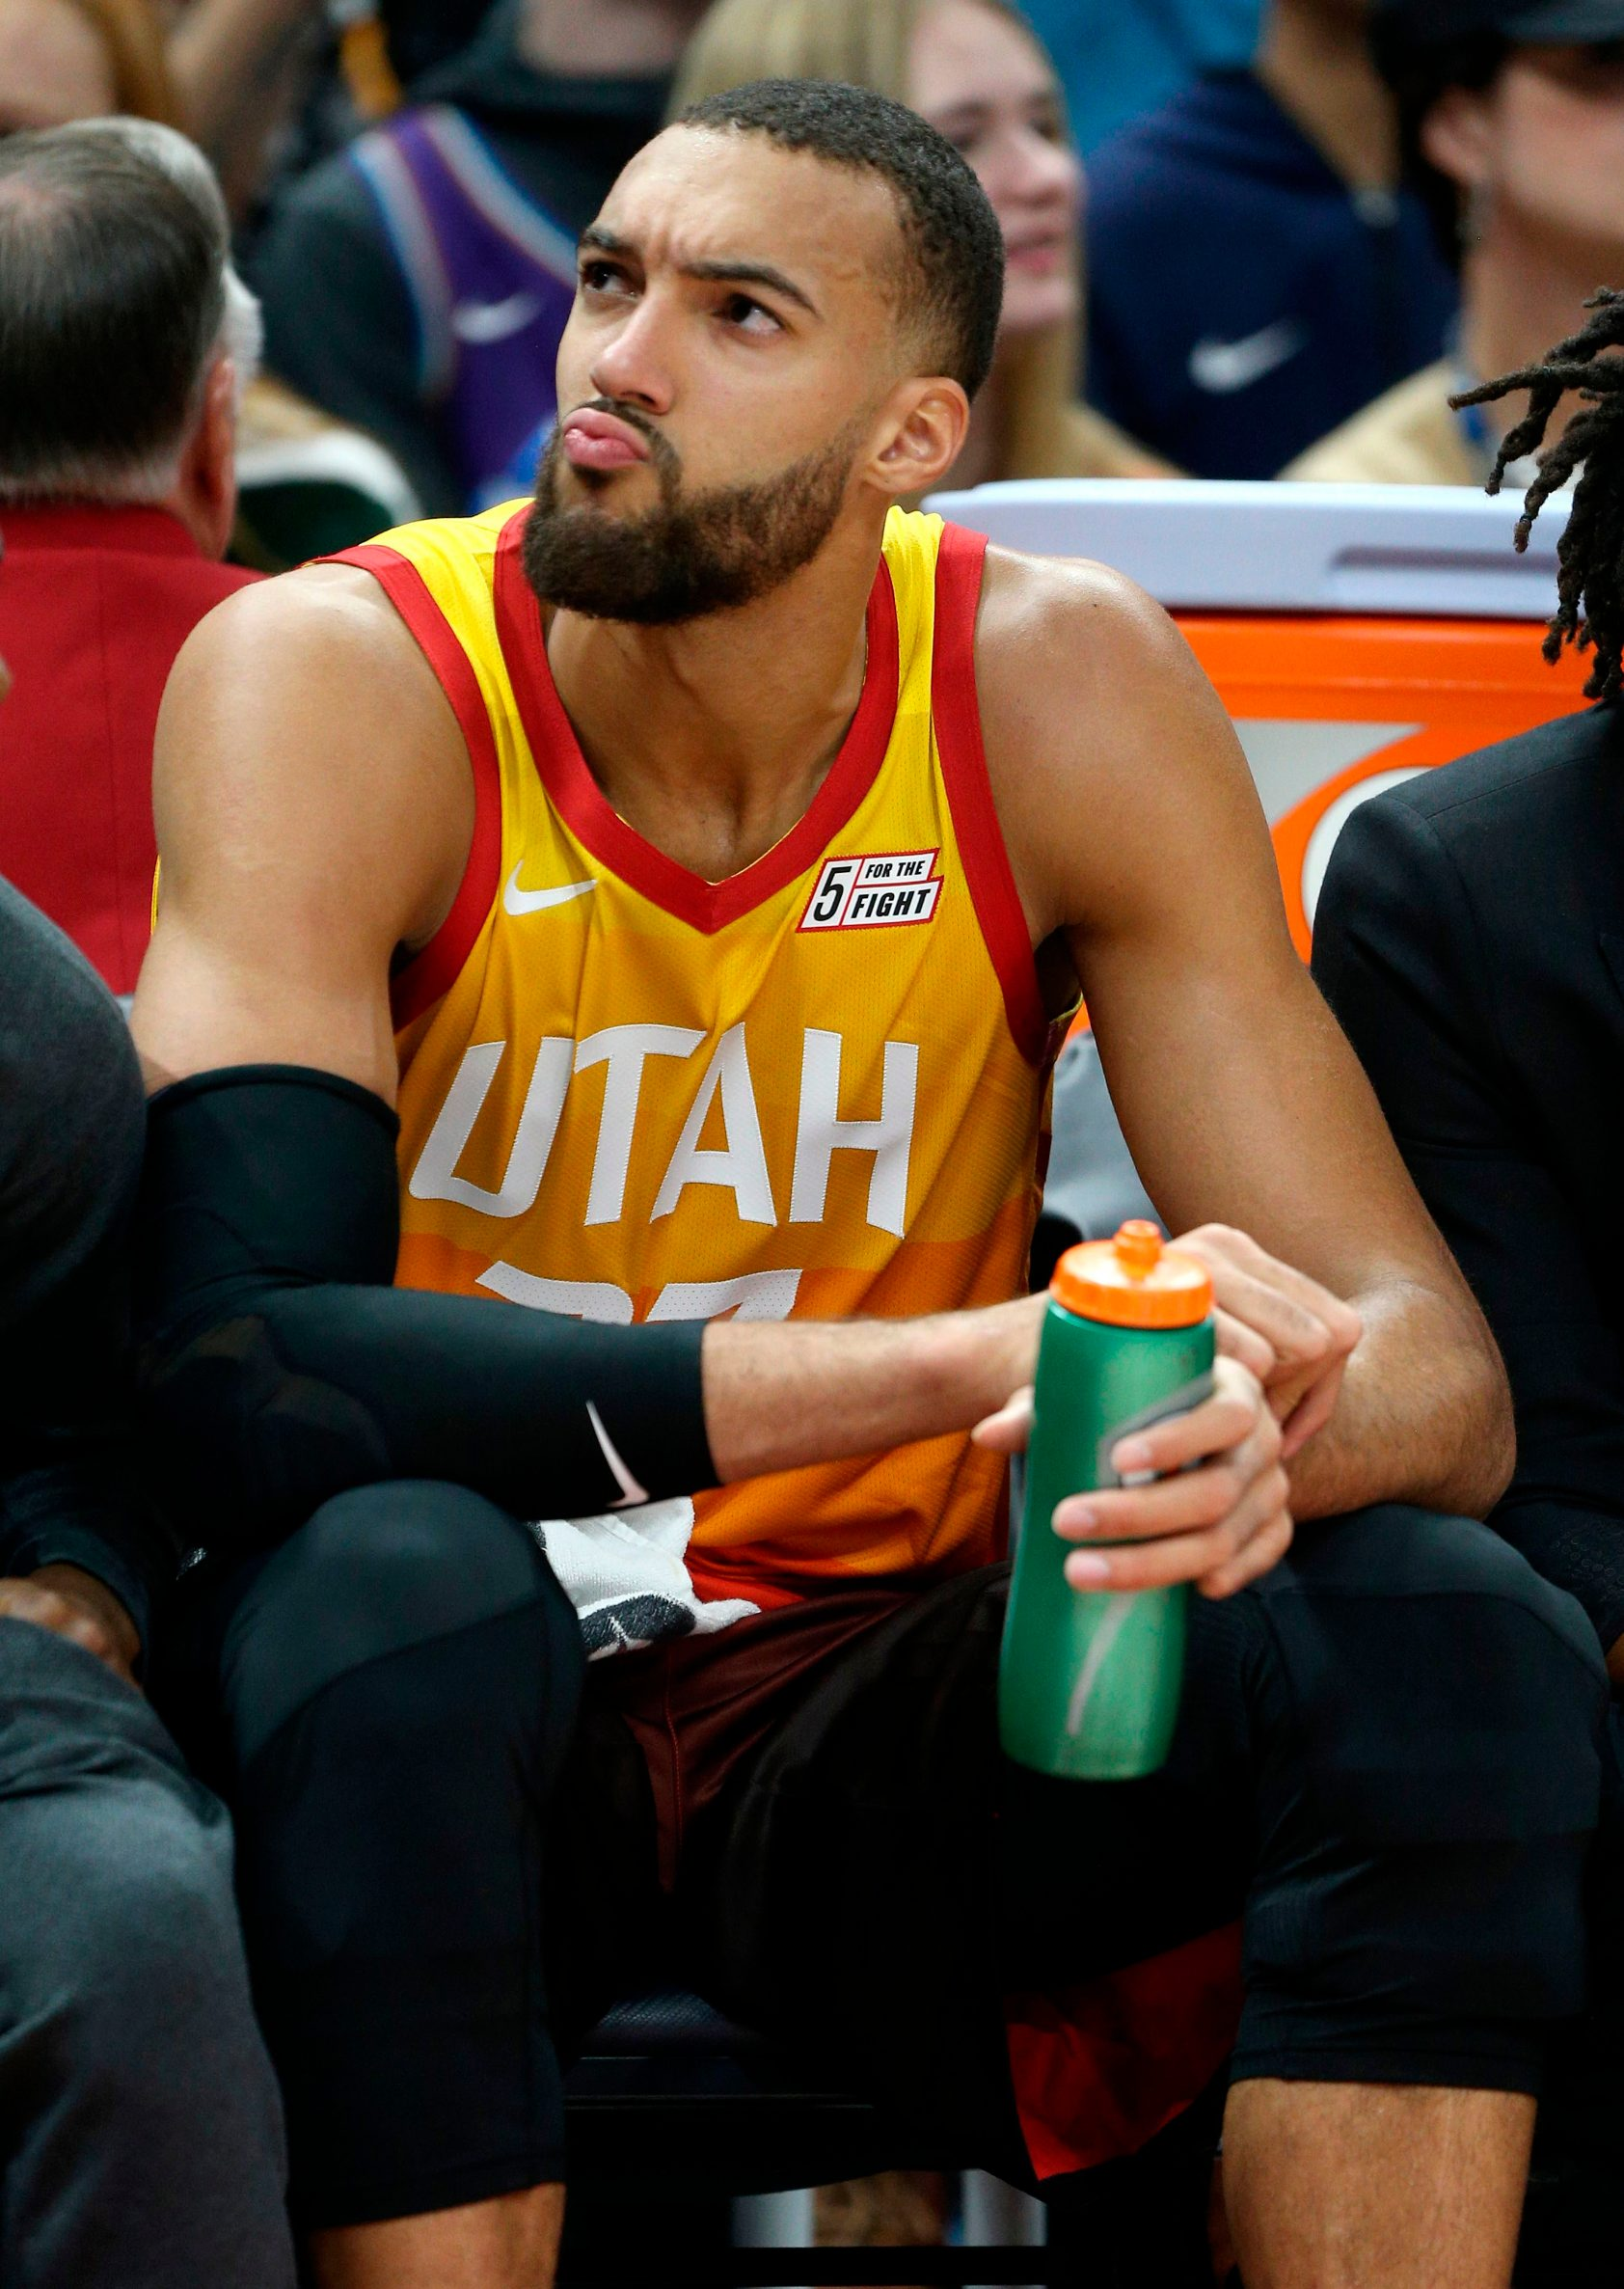 (FILES) In this file photo taken on December 04, 2019 Utah Jazz center Rudy Gobert looks at the fans in the stands during an NAB game against the Los Angeles Lakers in Salt Lake City, Utah. - The NBA will suspend play starting on Thursday after a Utah Jazz player preliminarily tested positive for the new coronavirus, the league said March 11, 2020. The test result was reported shortly before Utah's game against the Thunder in Oklahoma City was to begin, and that game was abruptly postponed. The NBA did not name the player who had tested positive, but several US media outlets reported it was French defensive standout Rudy Gobert, who was listed first as questionable for the game and then as out with illness. (Photo by GEORGE FREY / AFP)